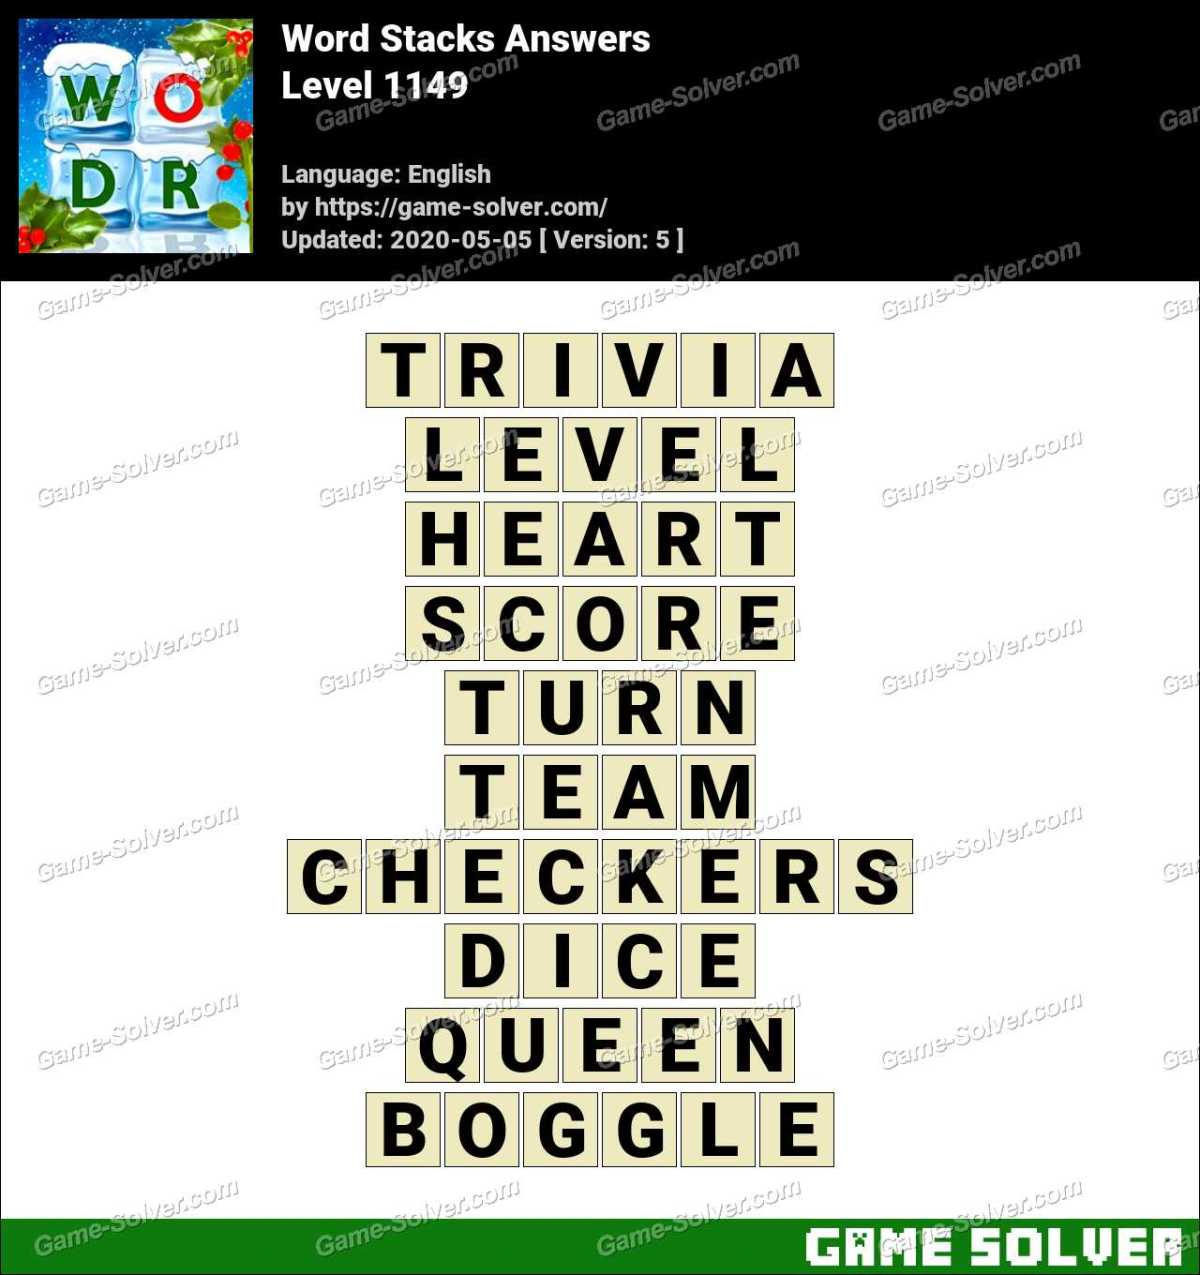 Word Stacks Level 1149 Answers